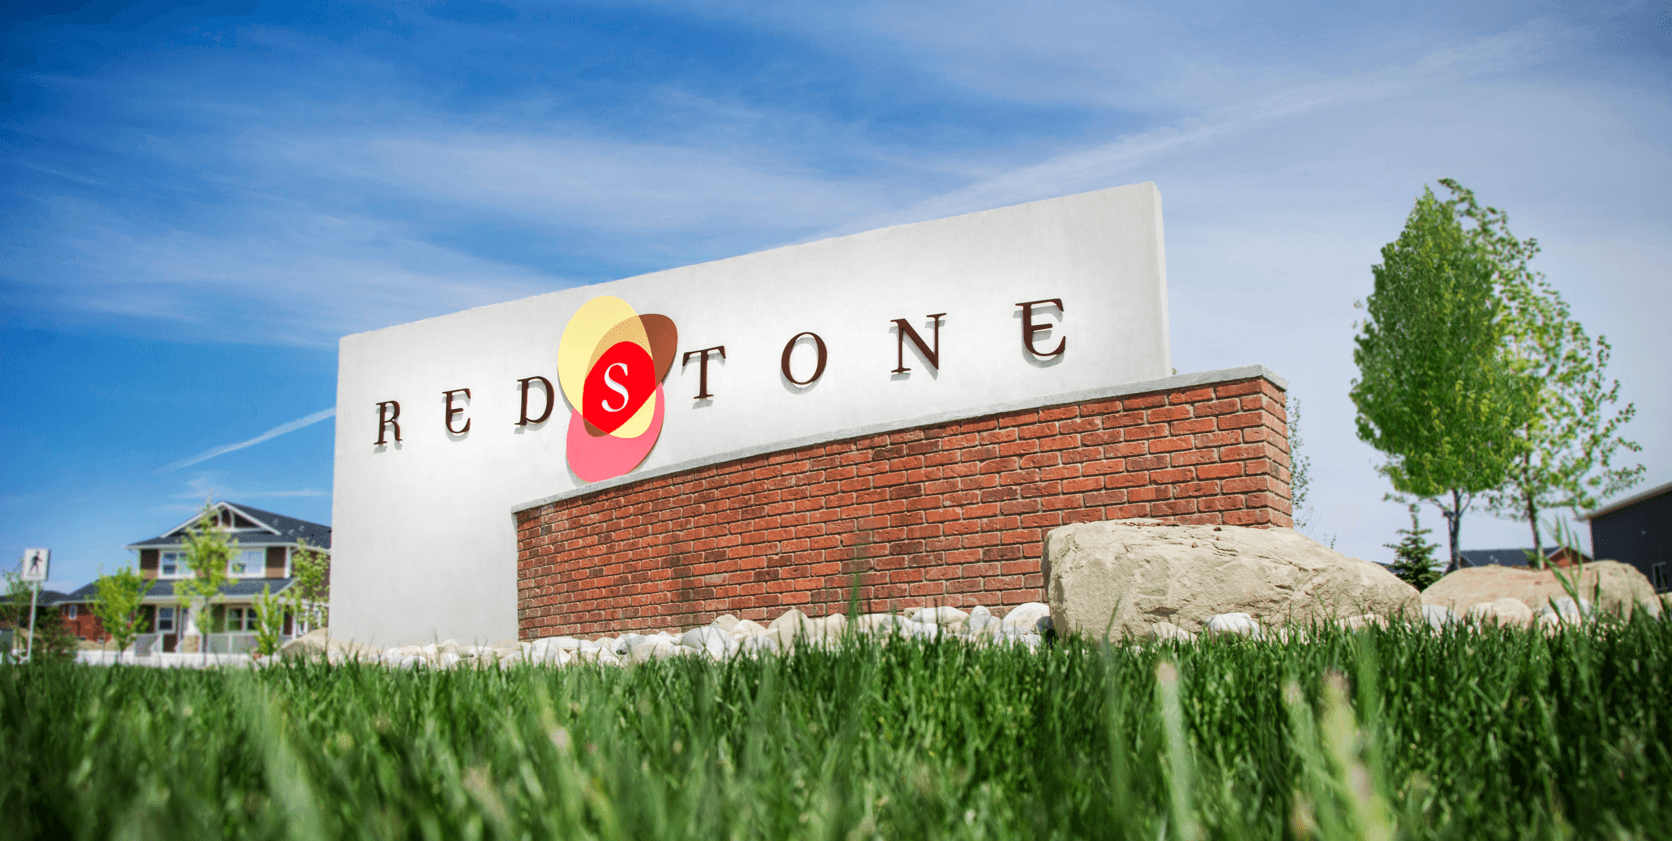 Good Reasons to Live in Redstone Sign Featured Image